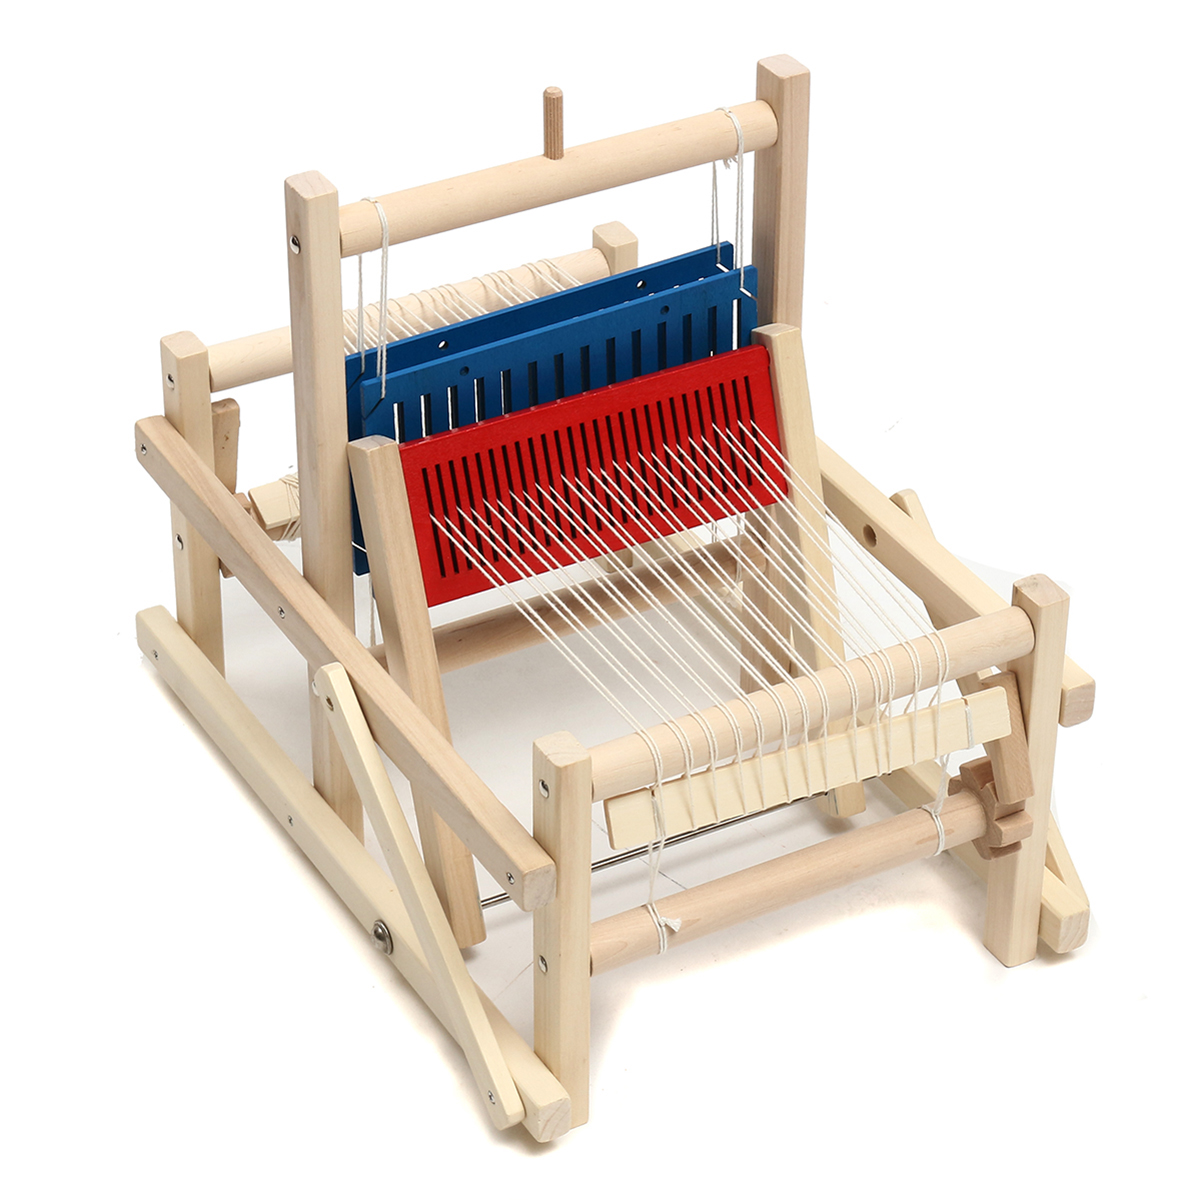 Craft Wooden Traditional Table Knitting Weaving Loom Kids Toys Educational  DIY Brocade Model